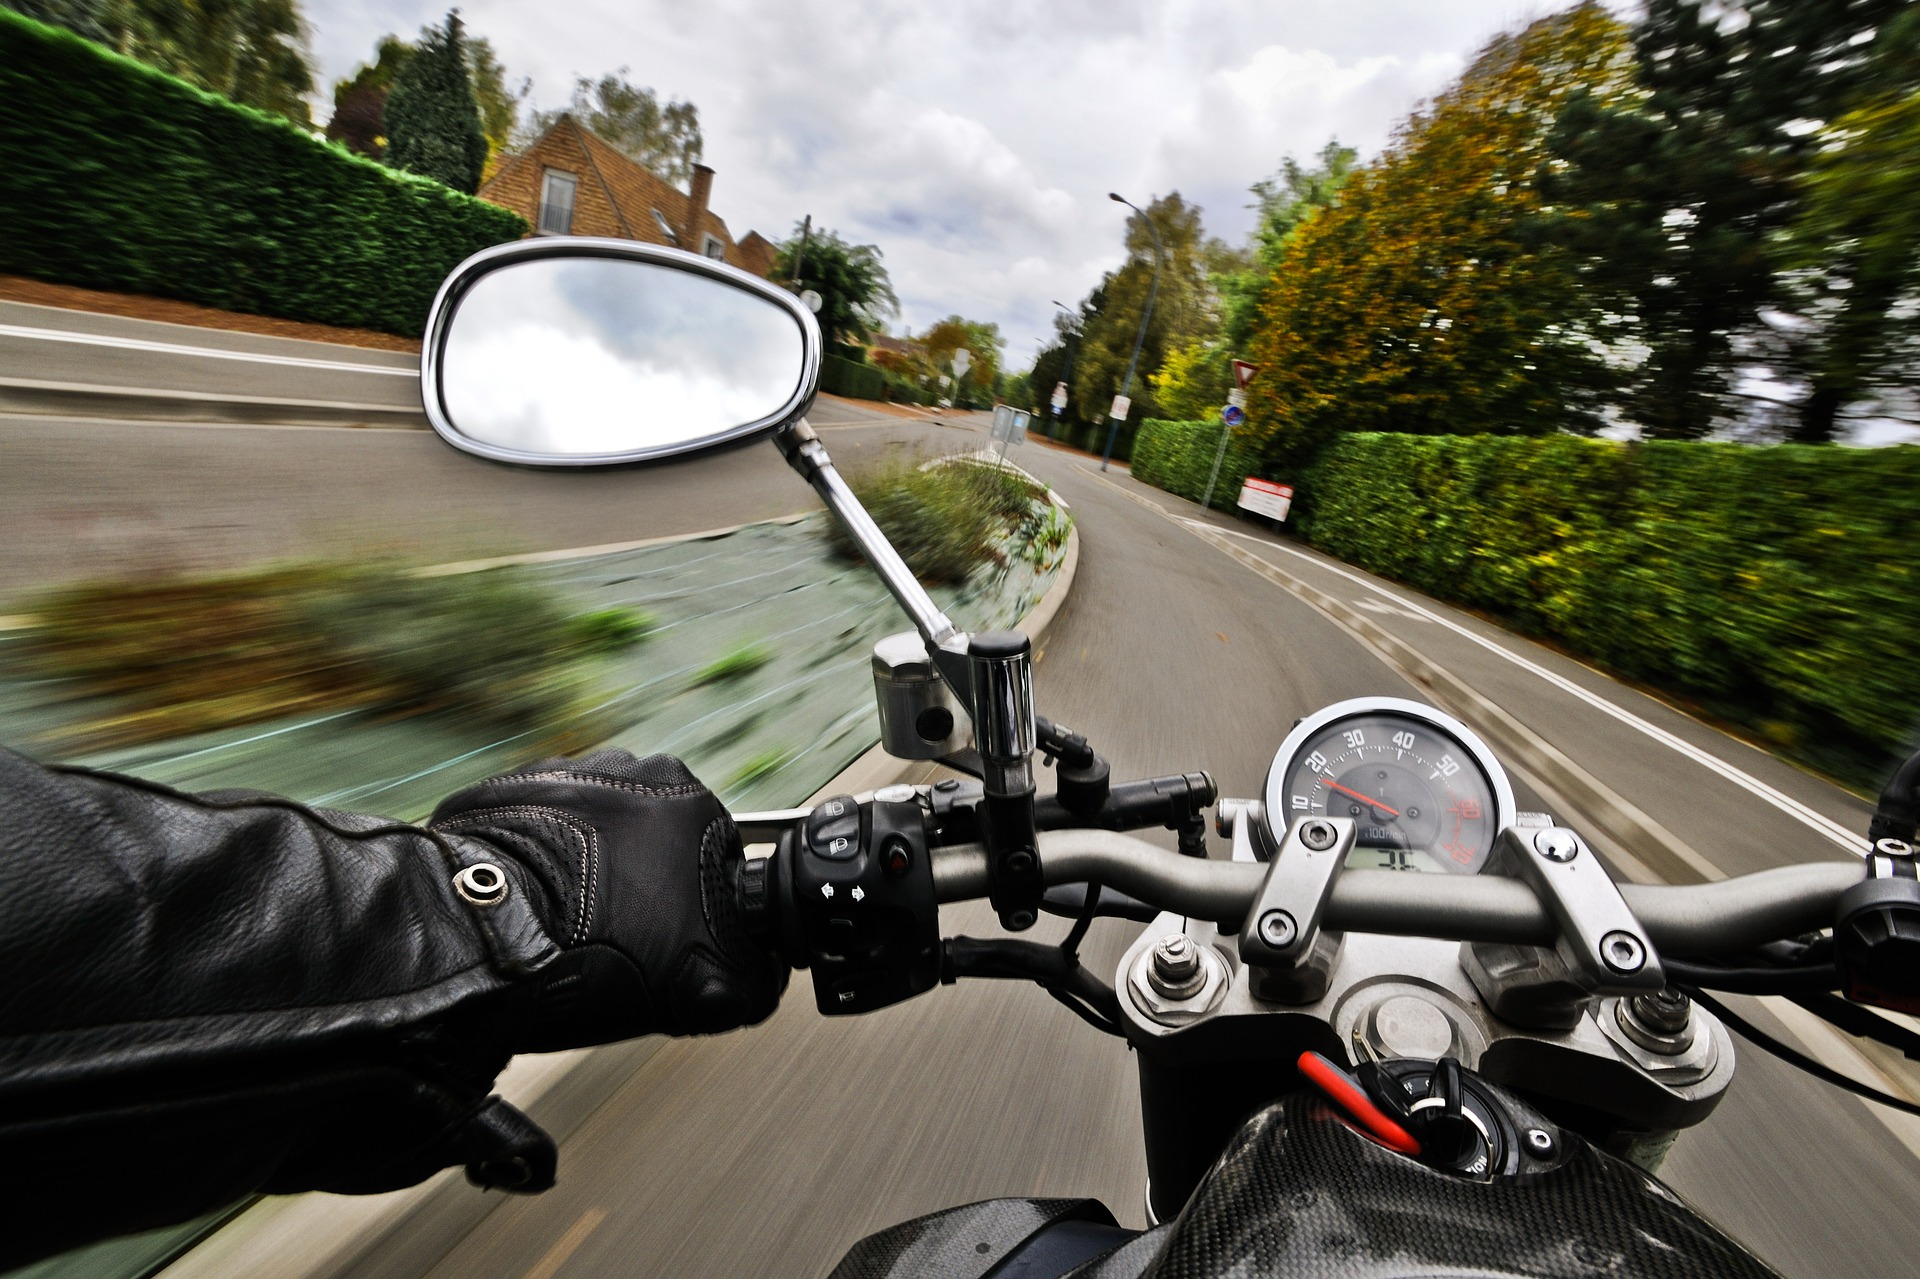 A beginner's guide to buying a motorcycle